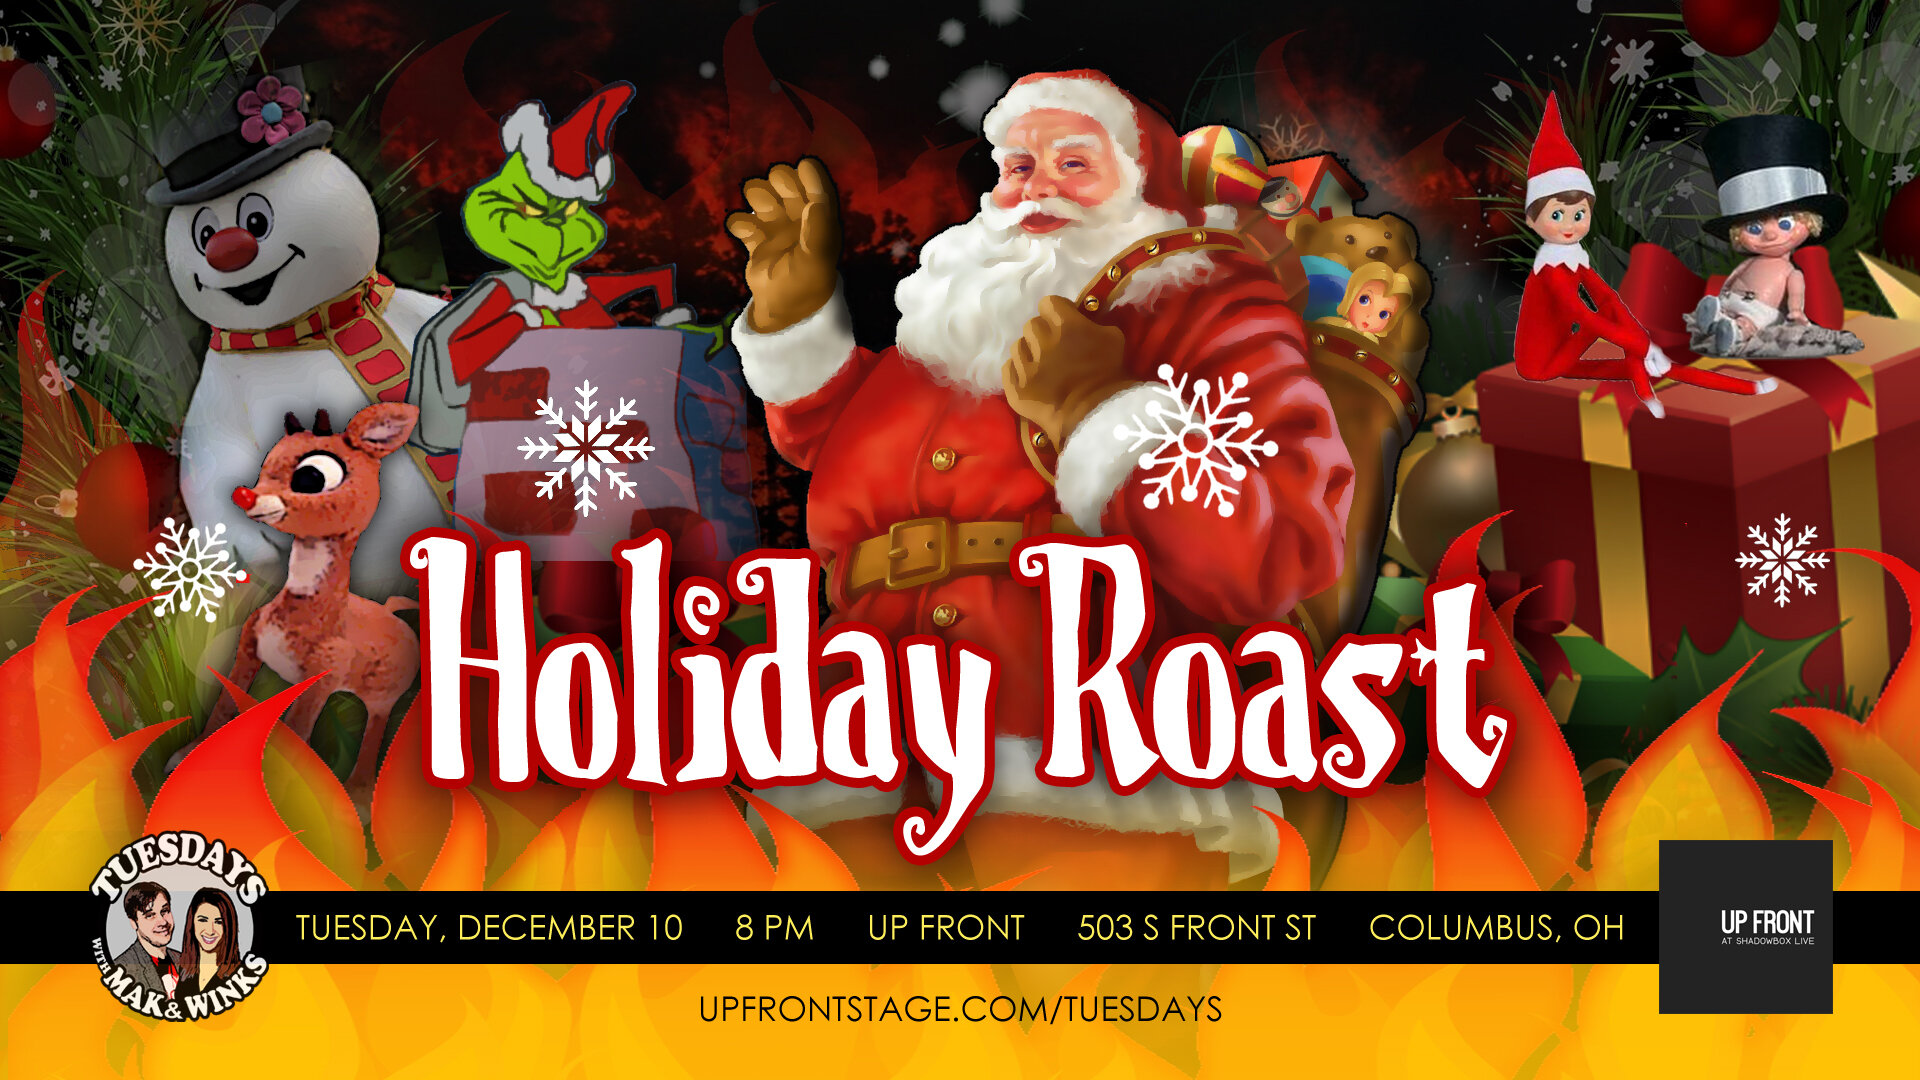 191210_HolidayRoast.jpg